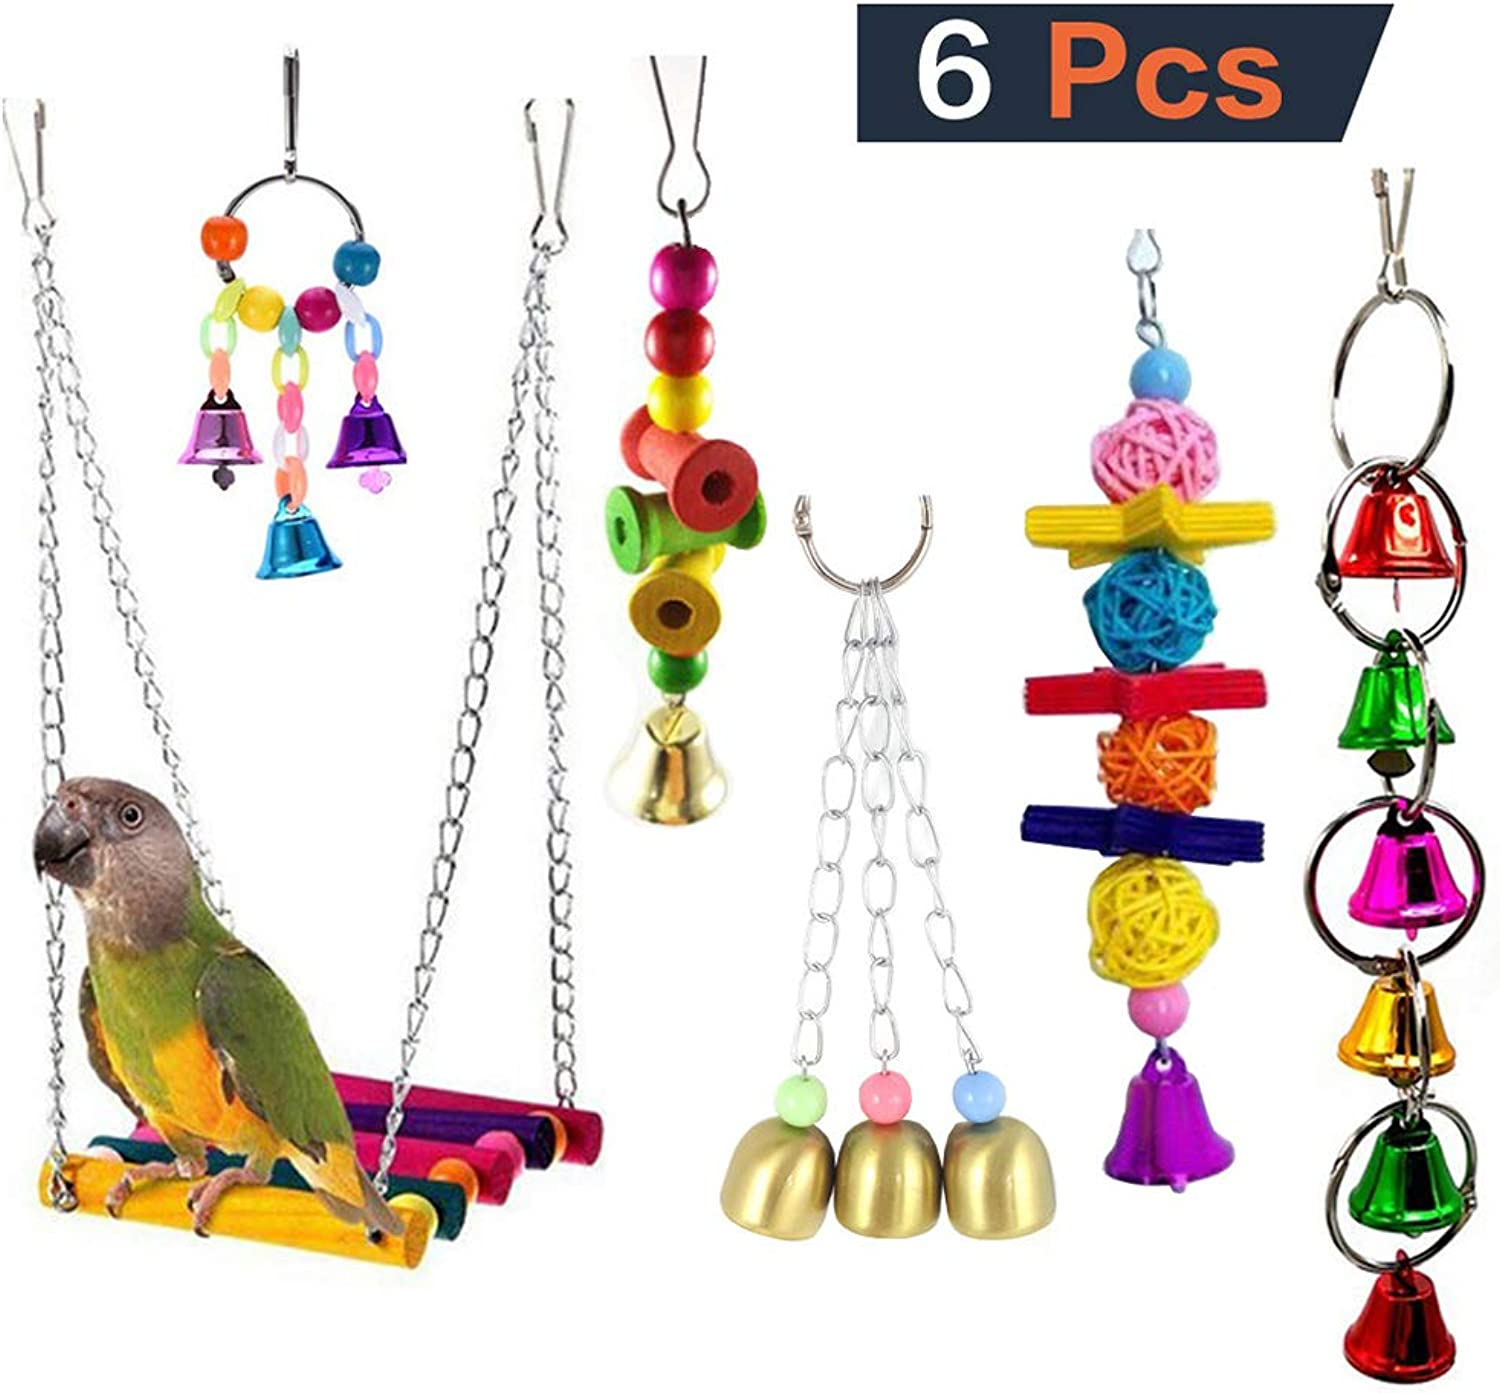 6pcs Bird Parred Toys Hanging Bell Pet Bird Cage Hammock Swing Parred bite Toy Suitable Small and Medium Bird